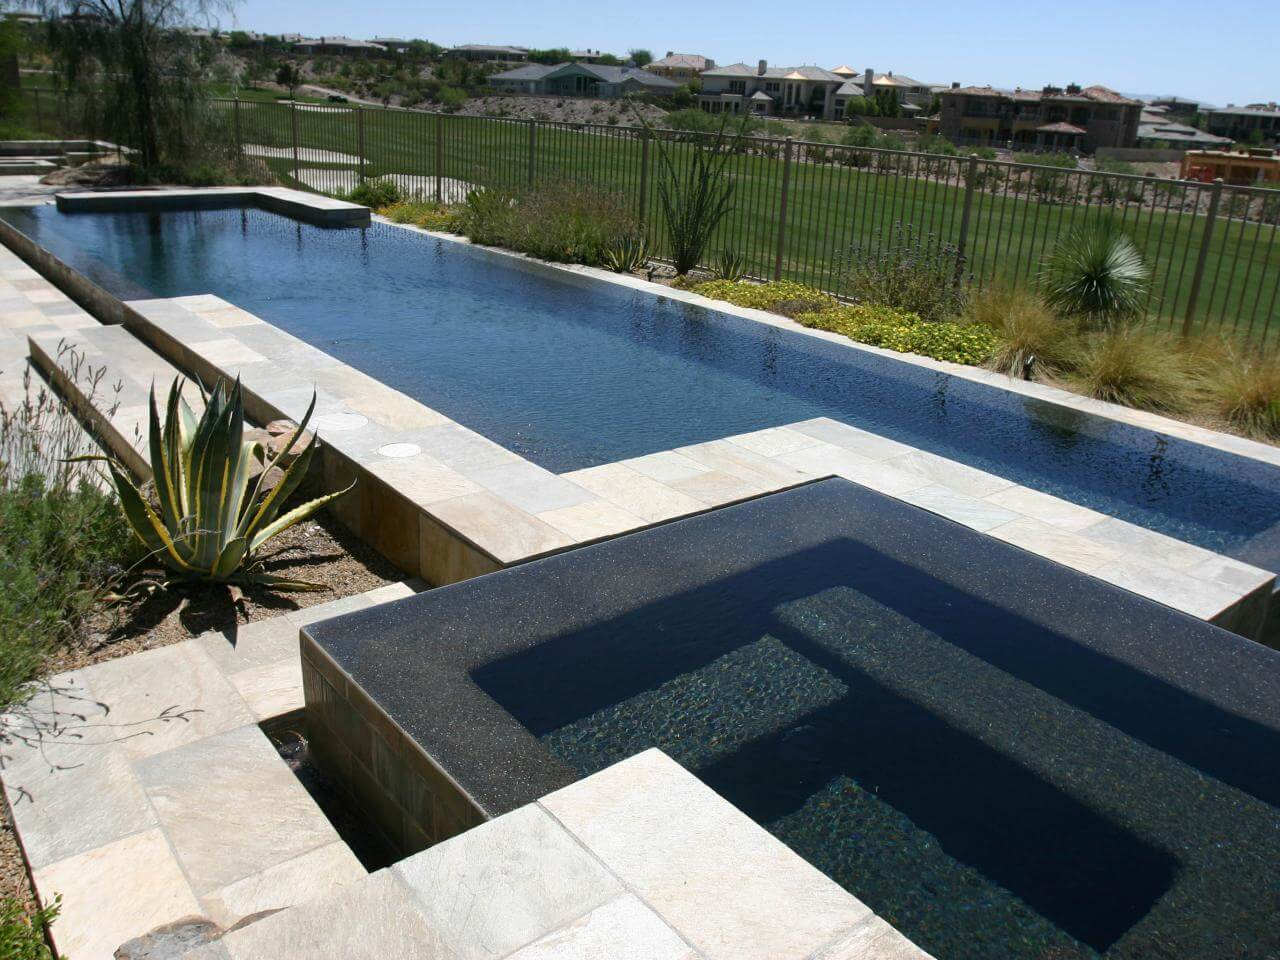 Look at all the amazing features a pool can have